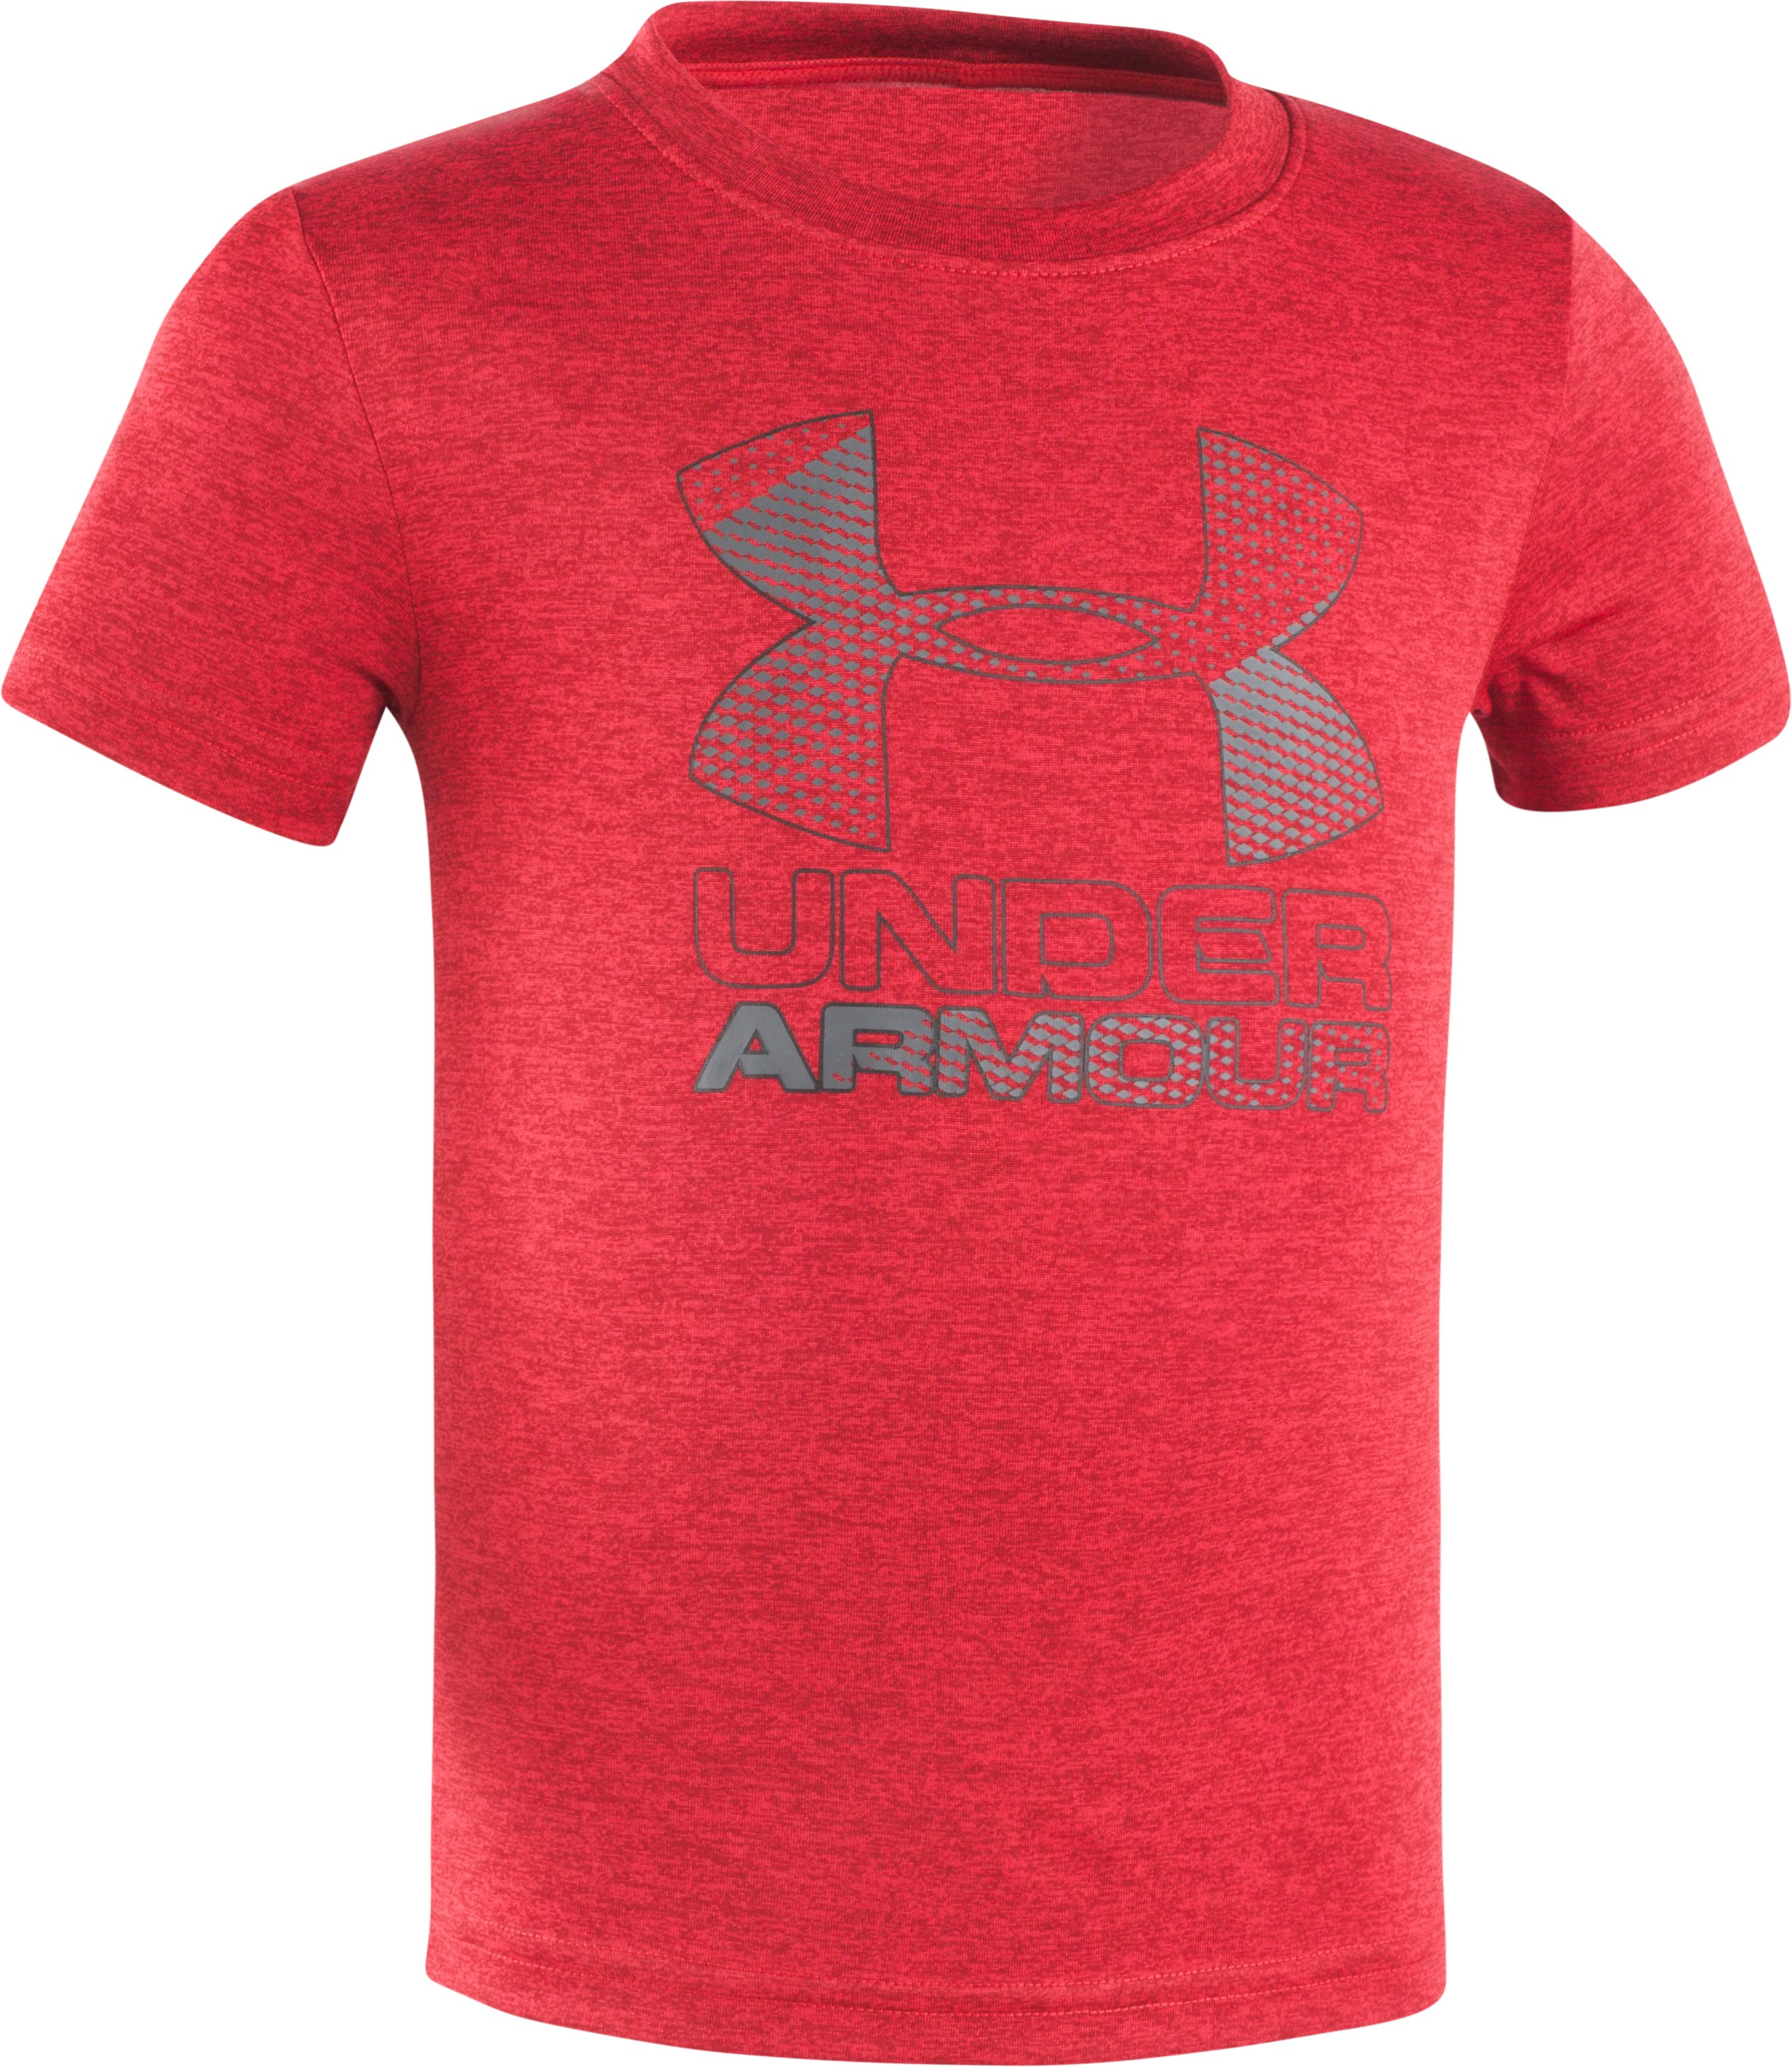 Boys' Toddler UA Big Logo Hybrid Short Sleeve Twist T-Shirt, Red